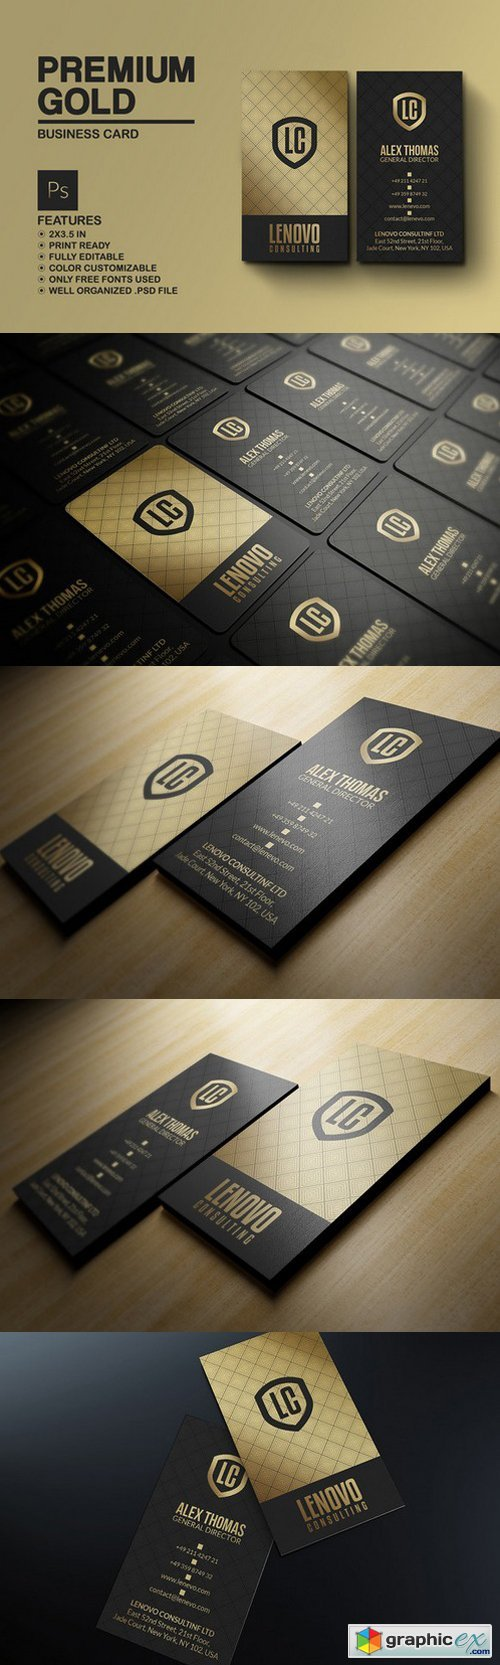 Premium Gold And Black Business Card 786200